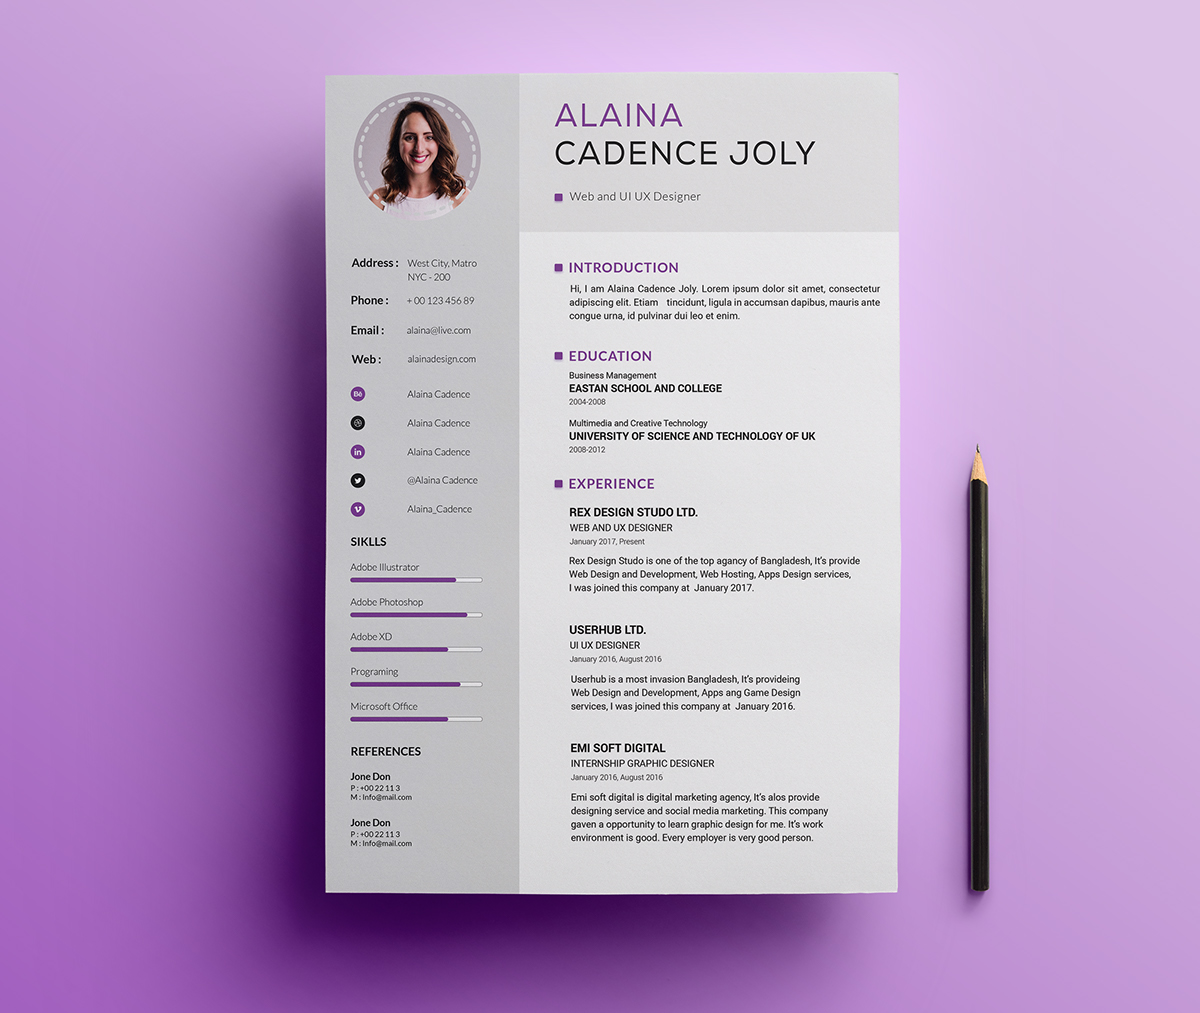 Professional Resume Templates Free: 75 Best Free Resume Templates Of 2019